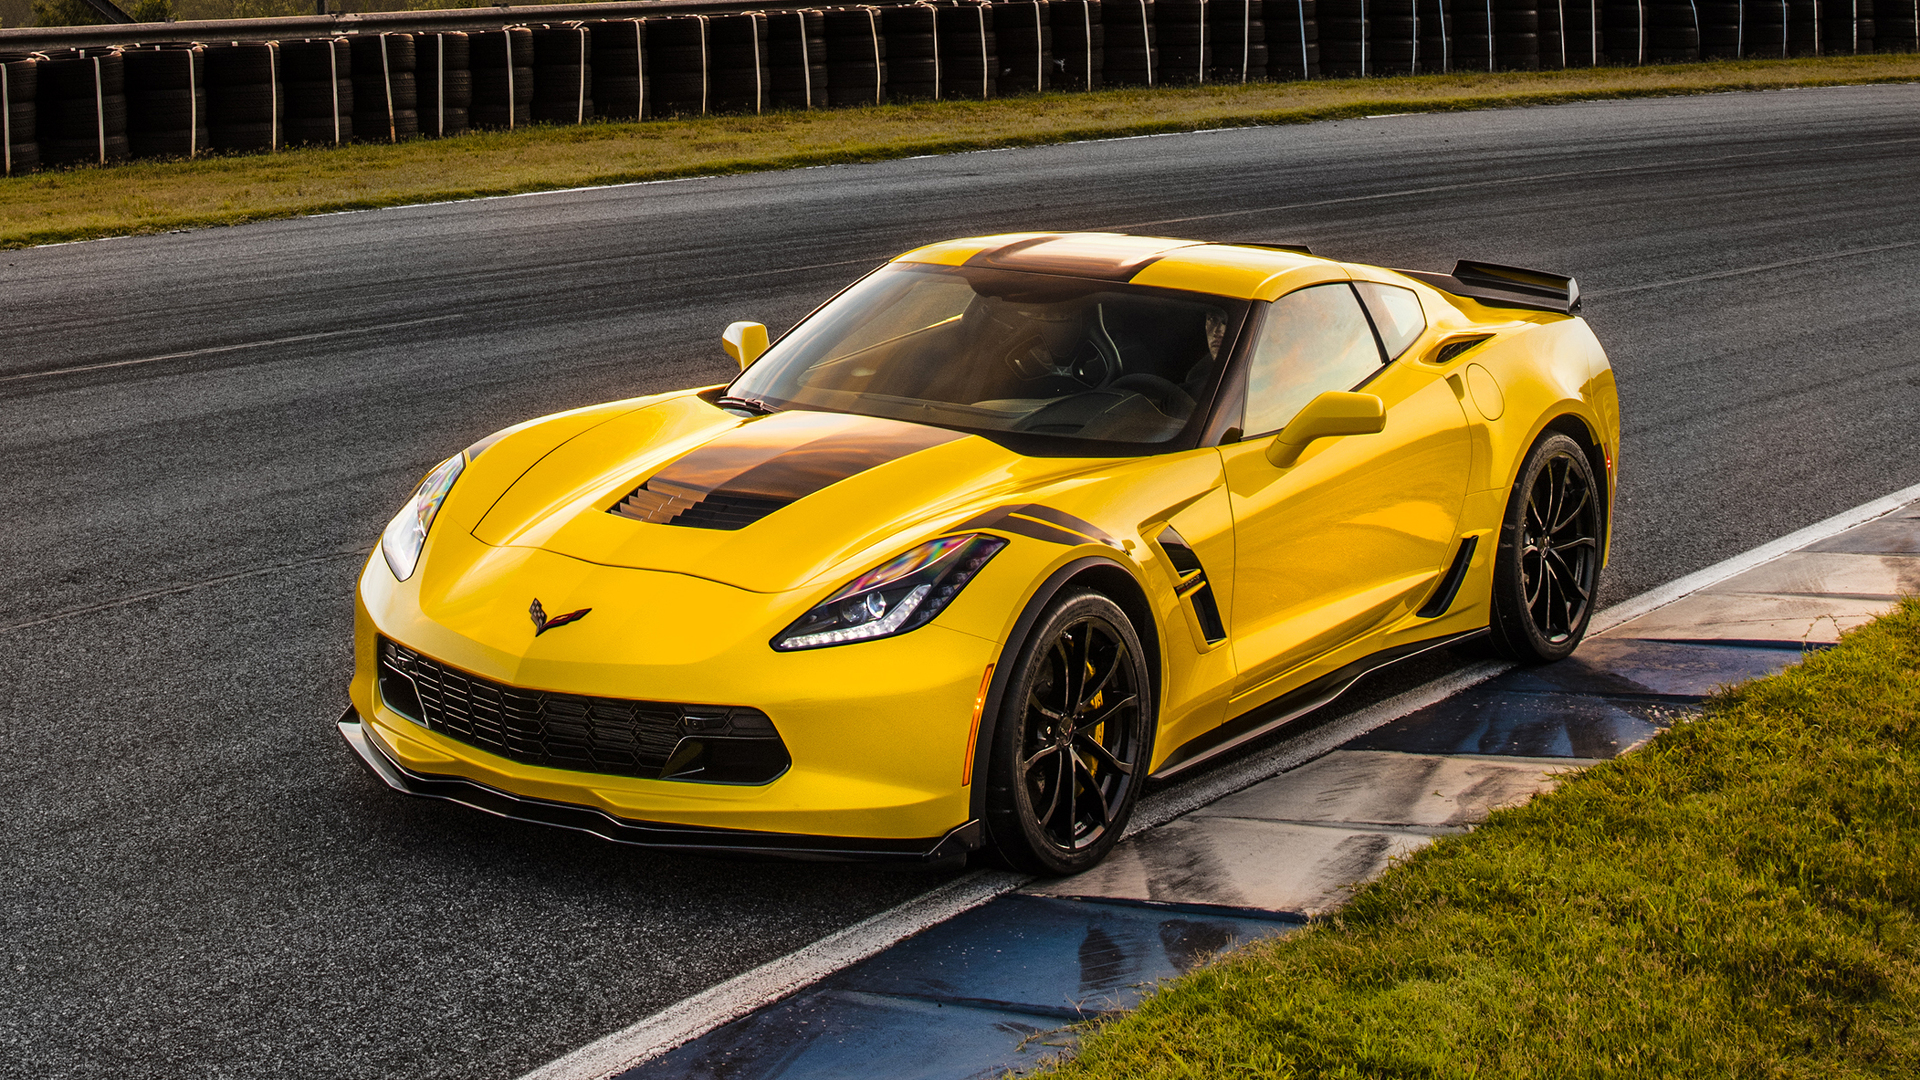 2008 Corvette For Sale >> First Drive: 2017 Chevy Corvette Grand Sport